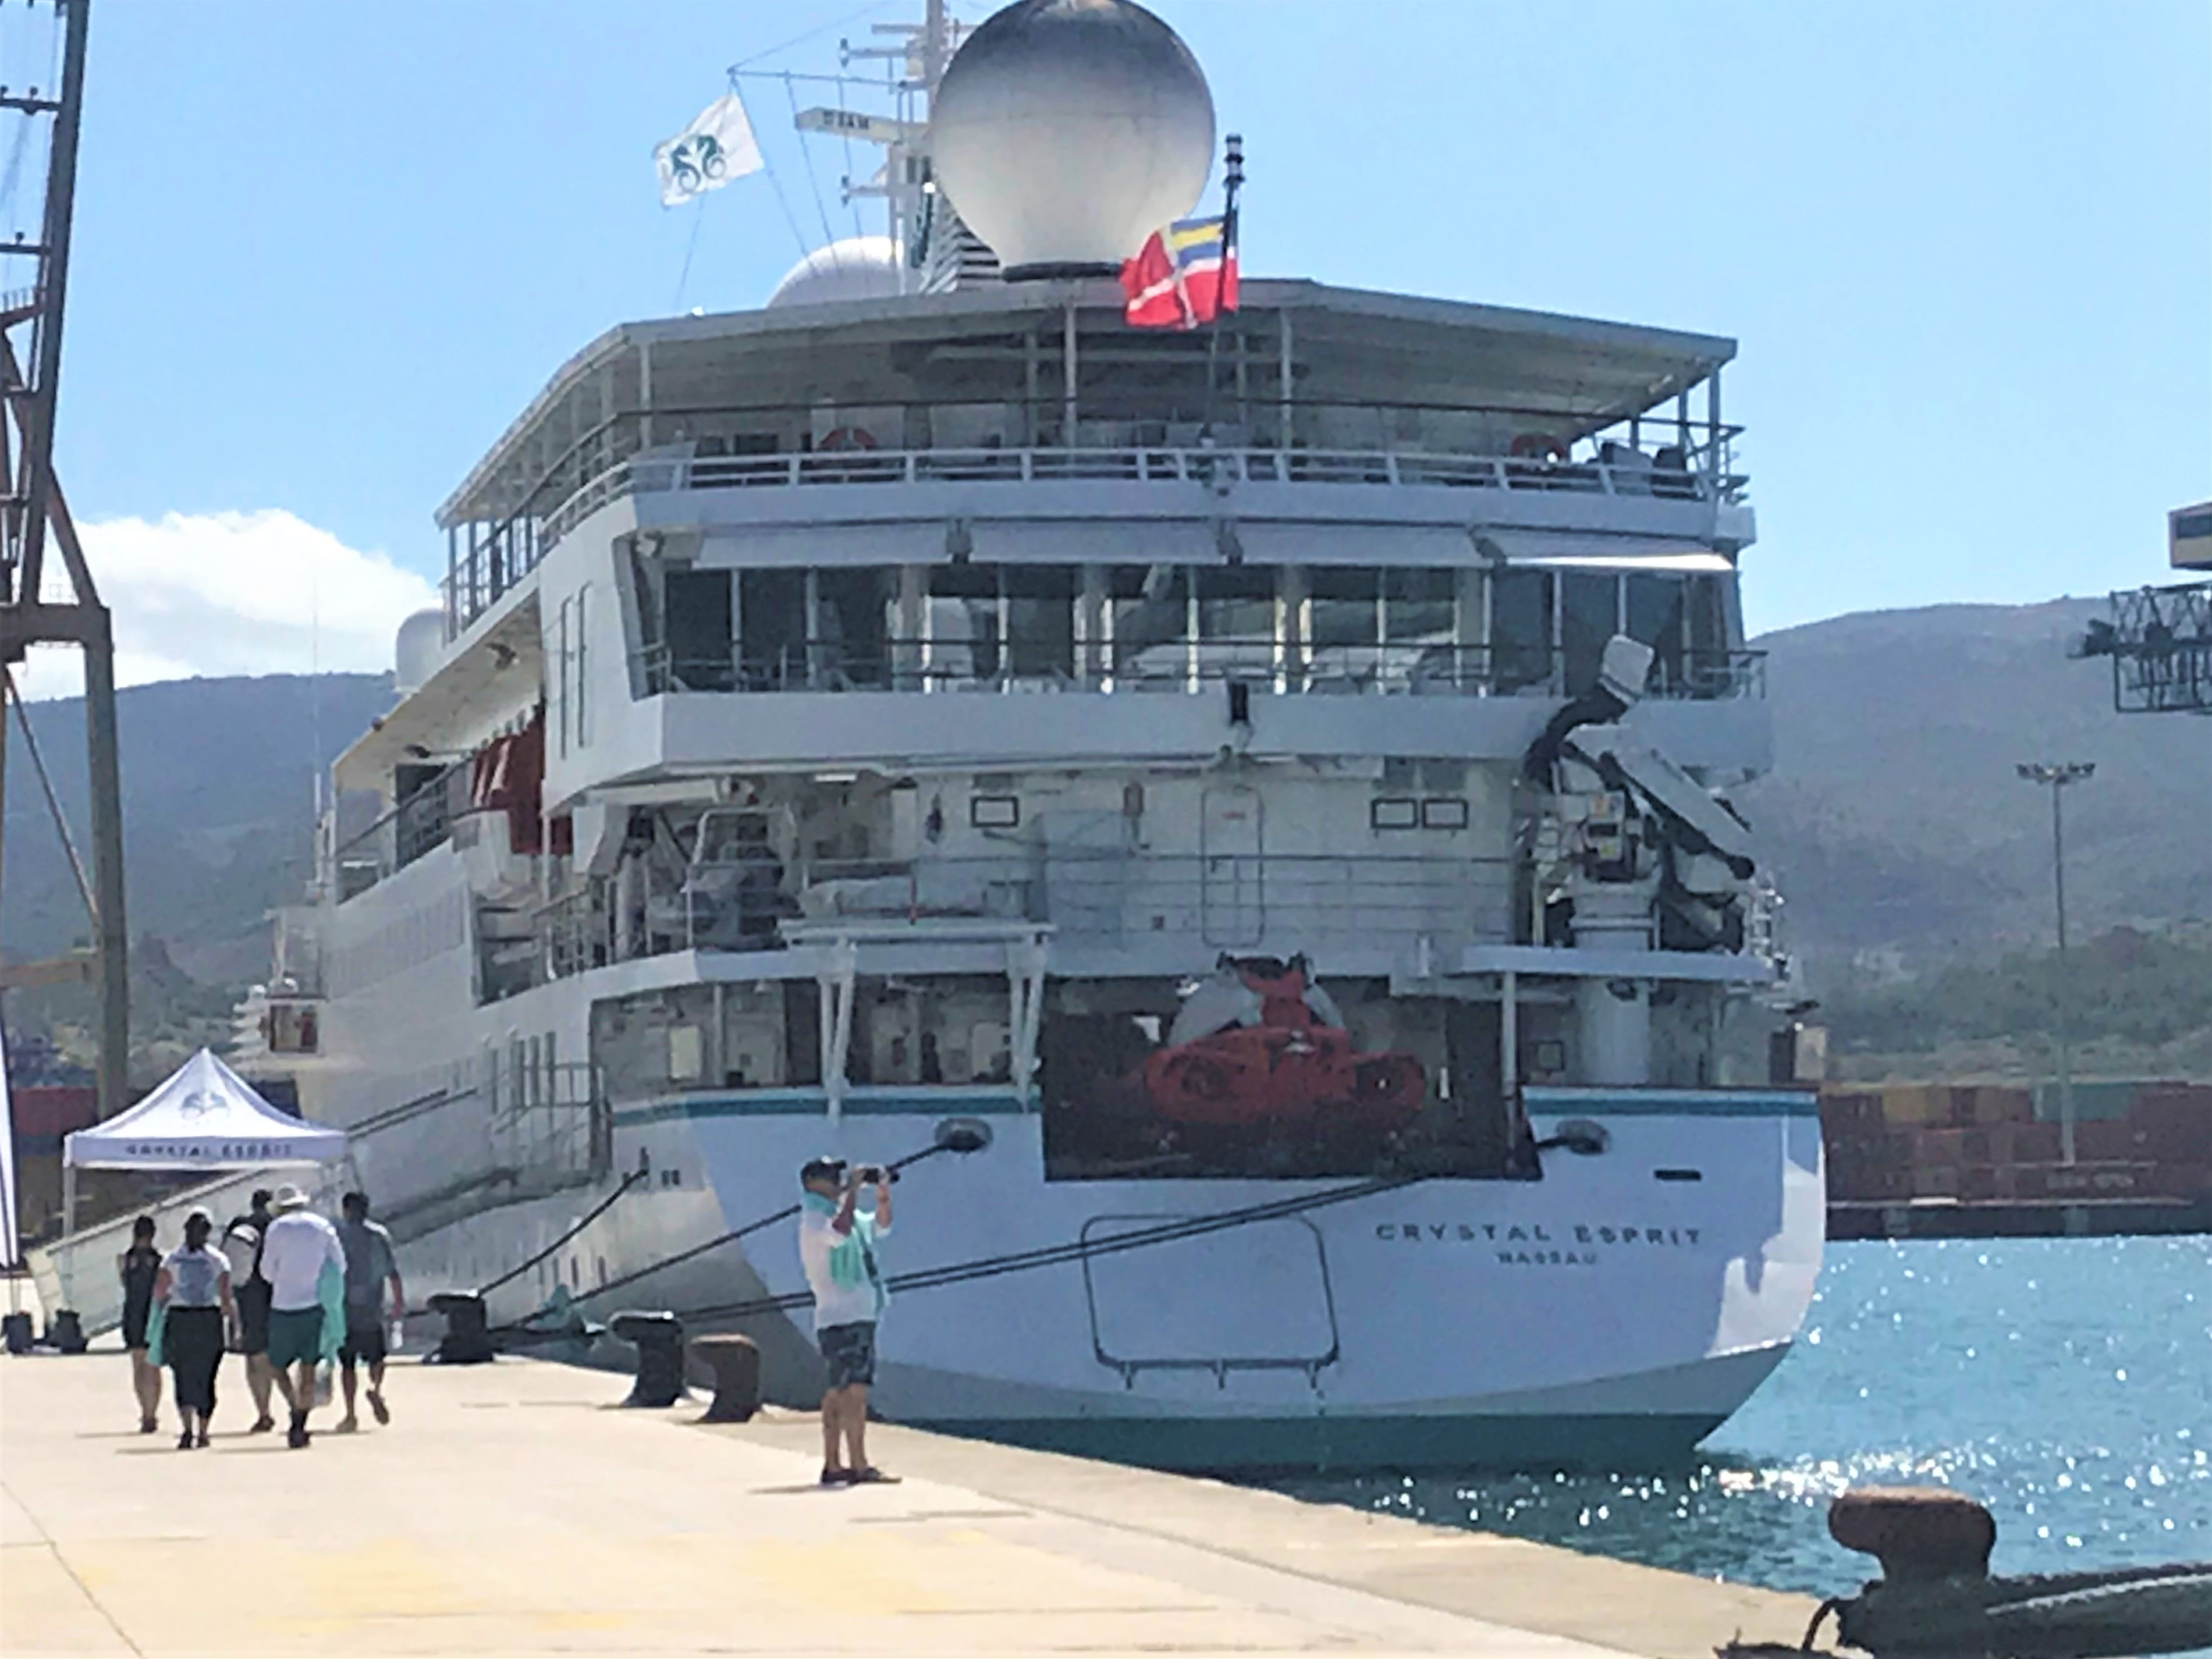 CRYSTAL ESPRIT, A SMALL SUPER LUXURY BOAT, VISITS THE PORT OF CARTAGENA FOR THE FIRST TIME